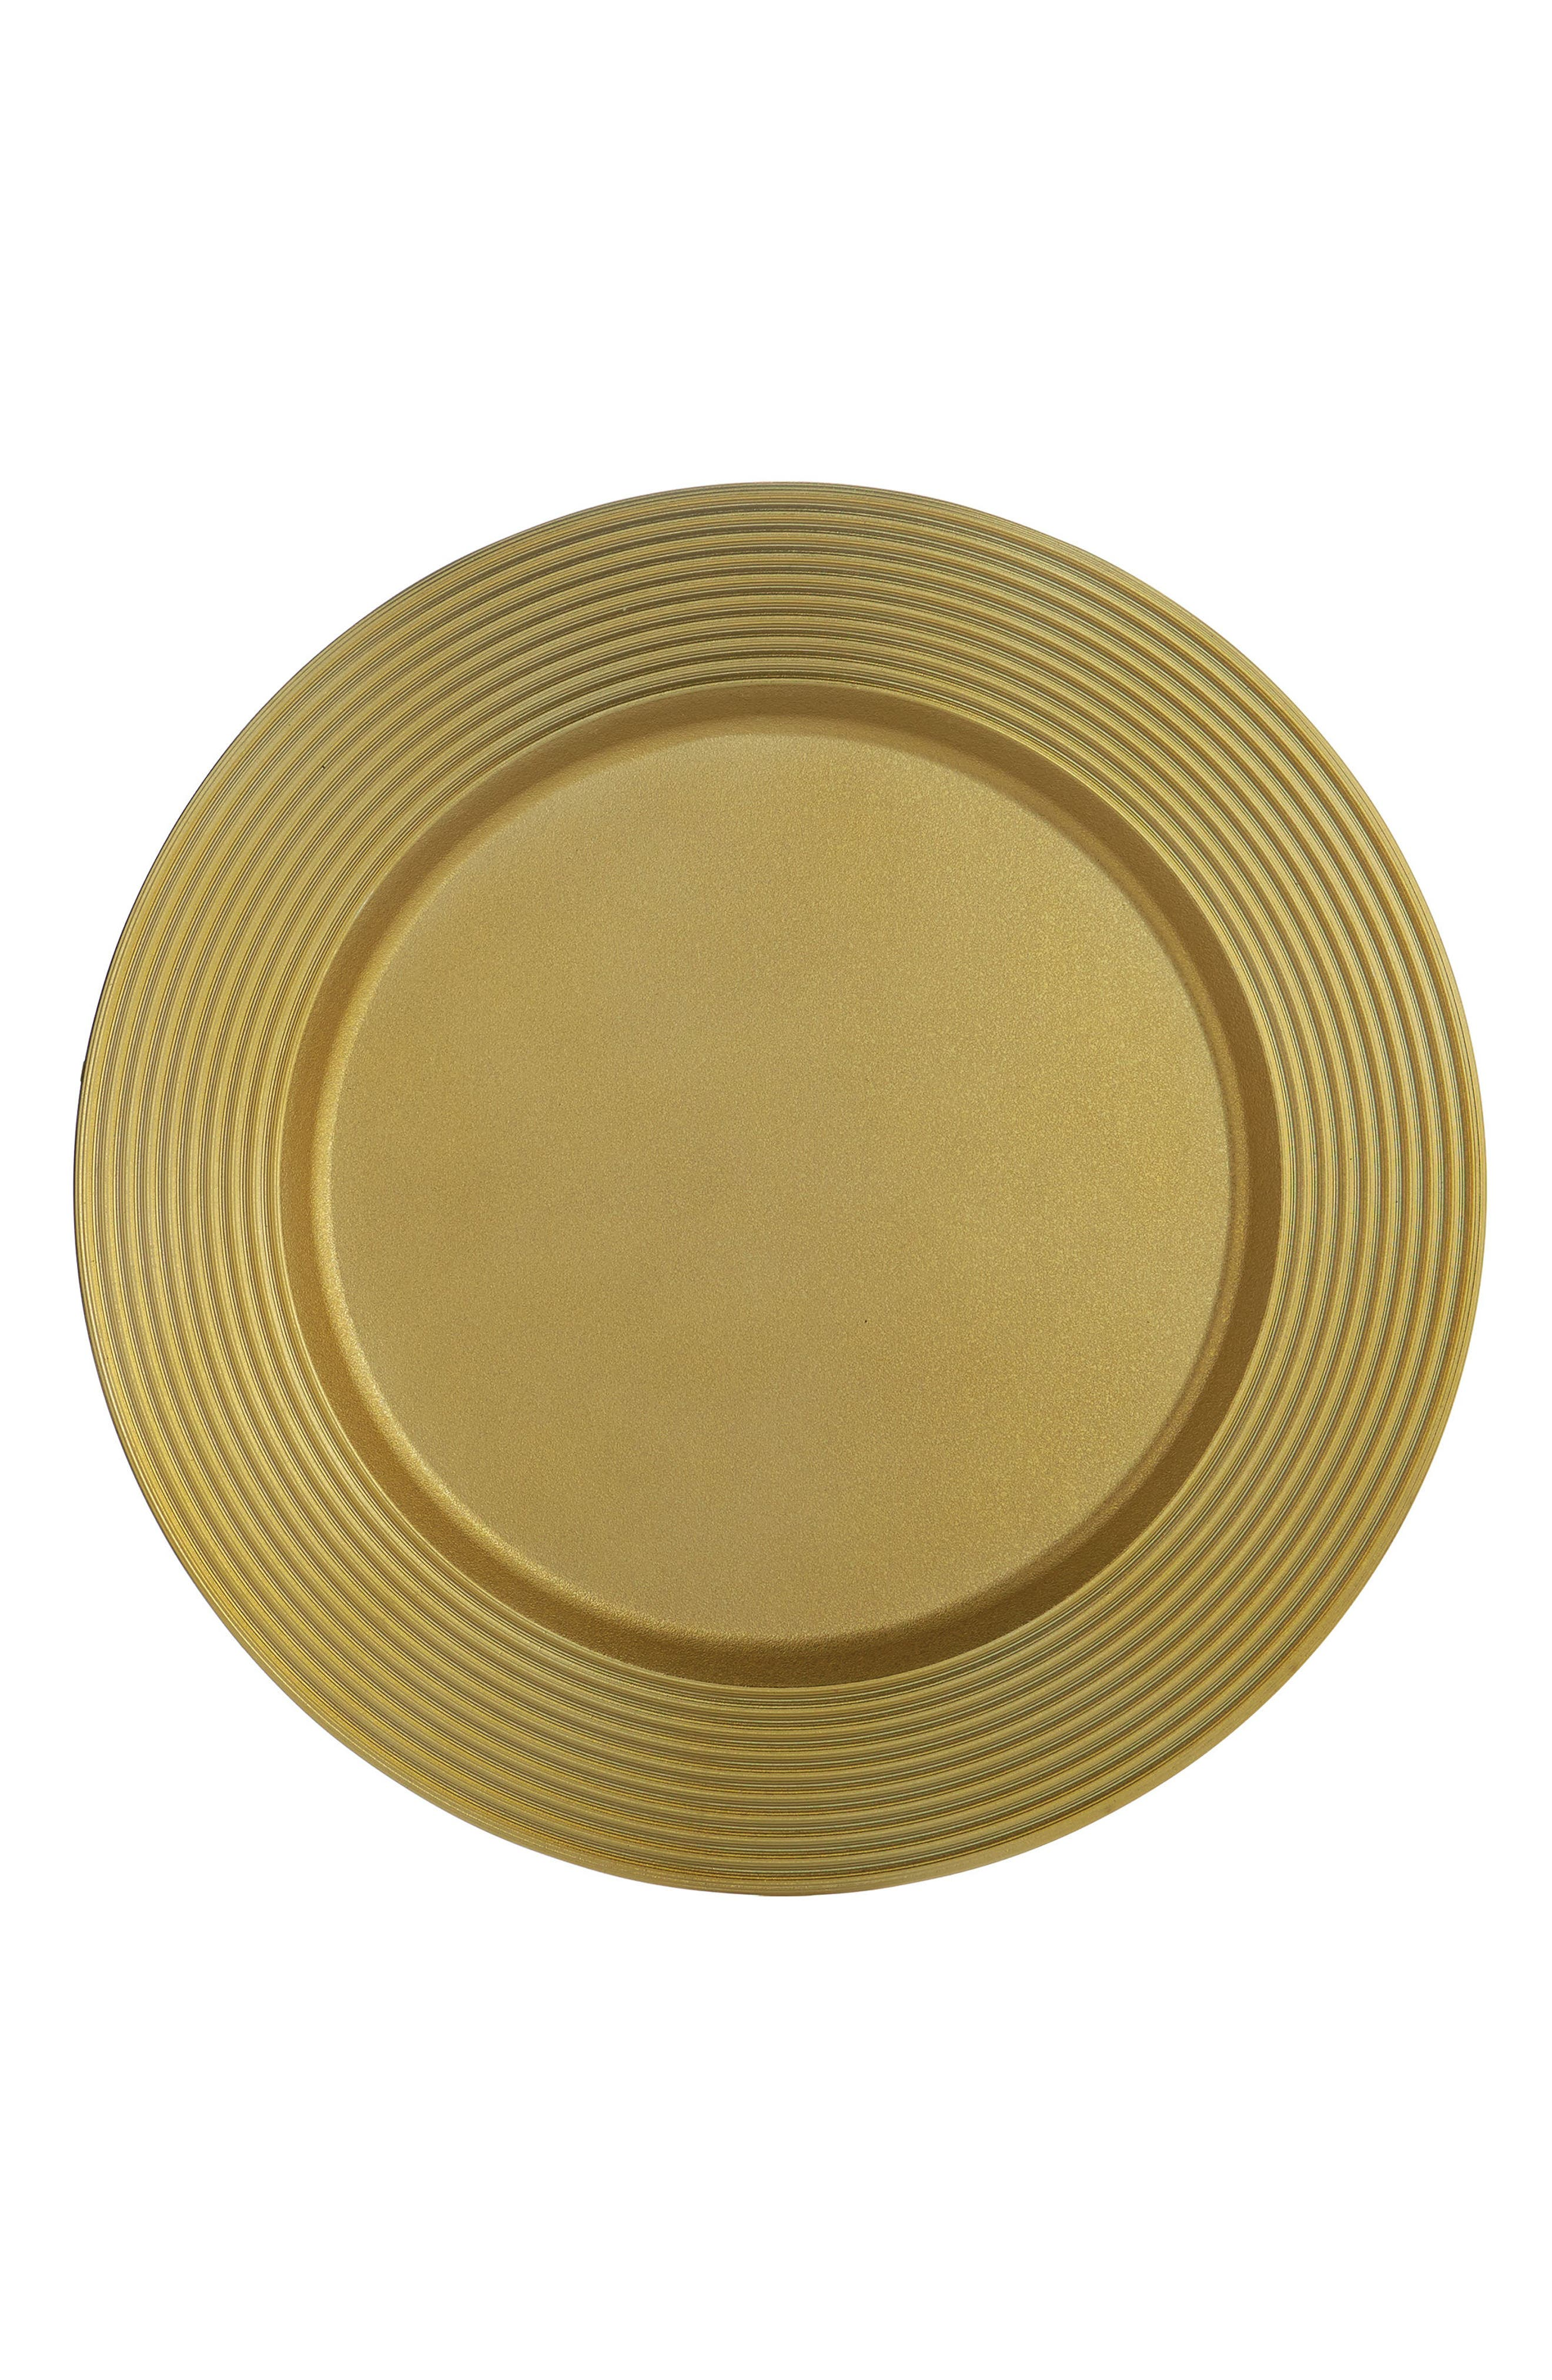 Wheat Charger Plate,                             Main thumbnail 1, color,                             GOLD